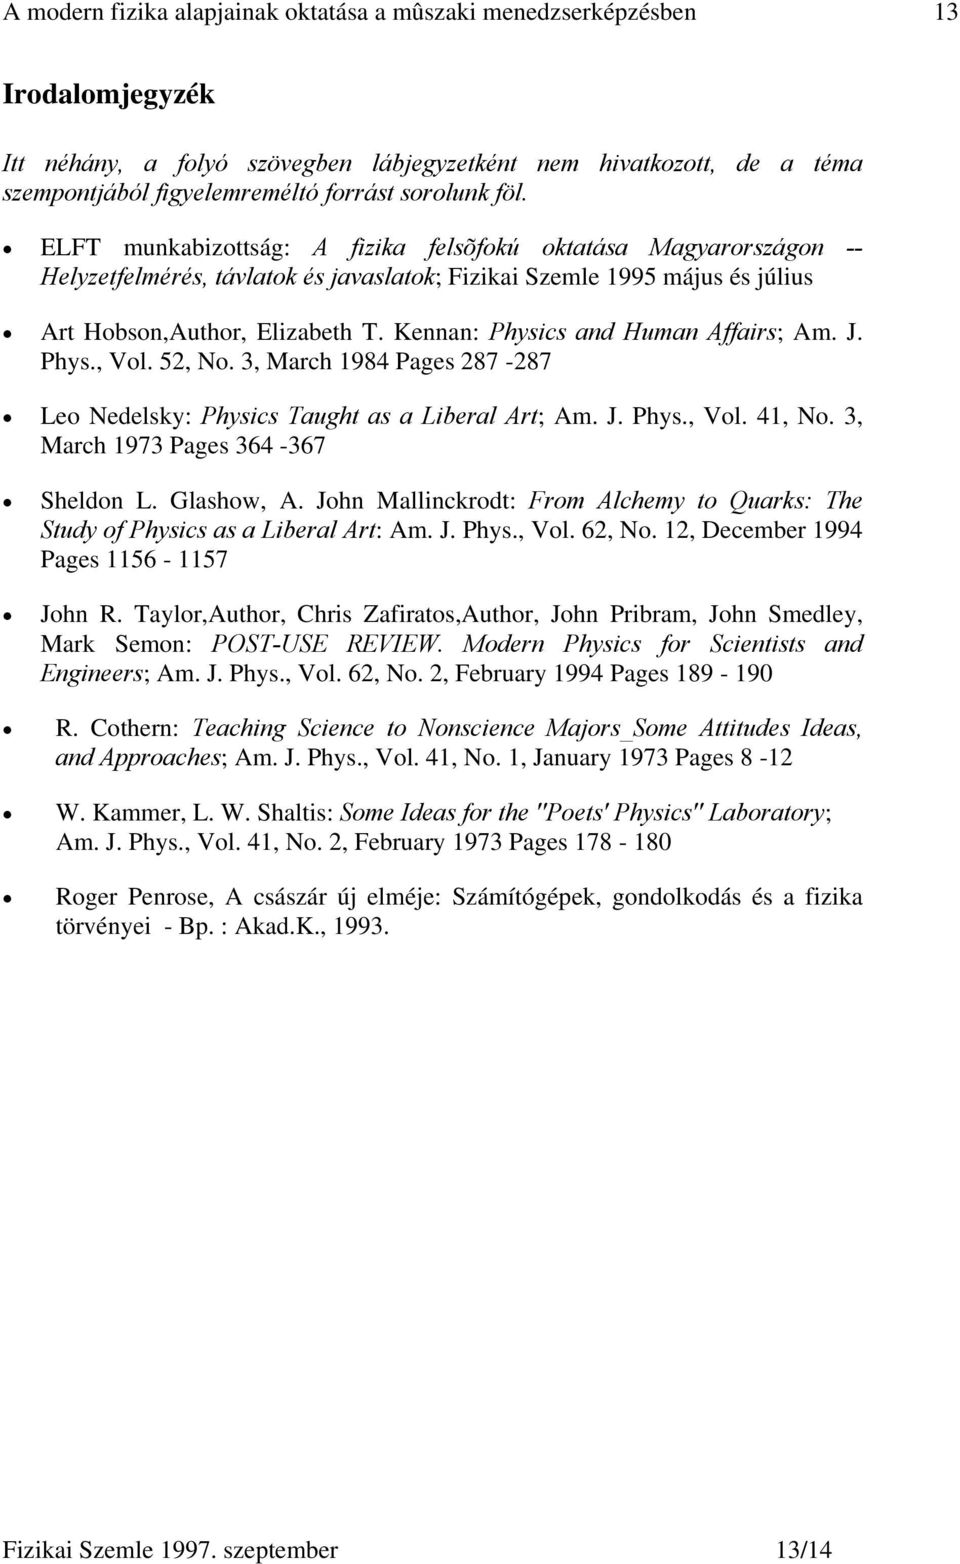 Kennan: Physics and Human Affairs; Am. J. Phys., Vol. 52, No. 3, March 1984 Pages 287-287 Leo Nedelsky: Physics Taught as a Liberal Art; Am. J. Phys., Vol. 41, No.